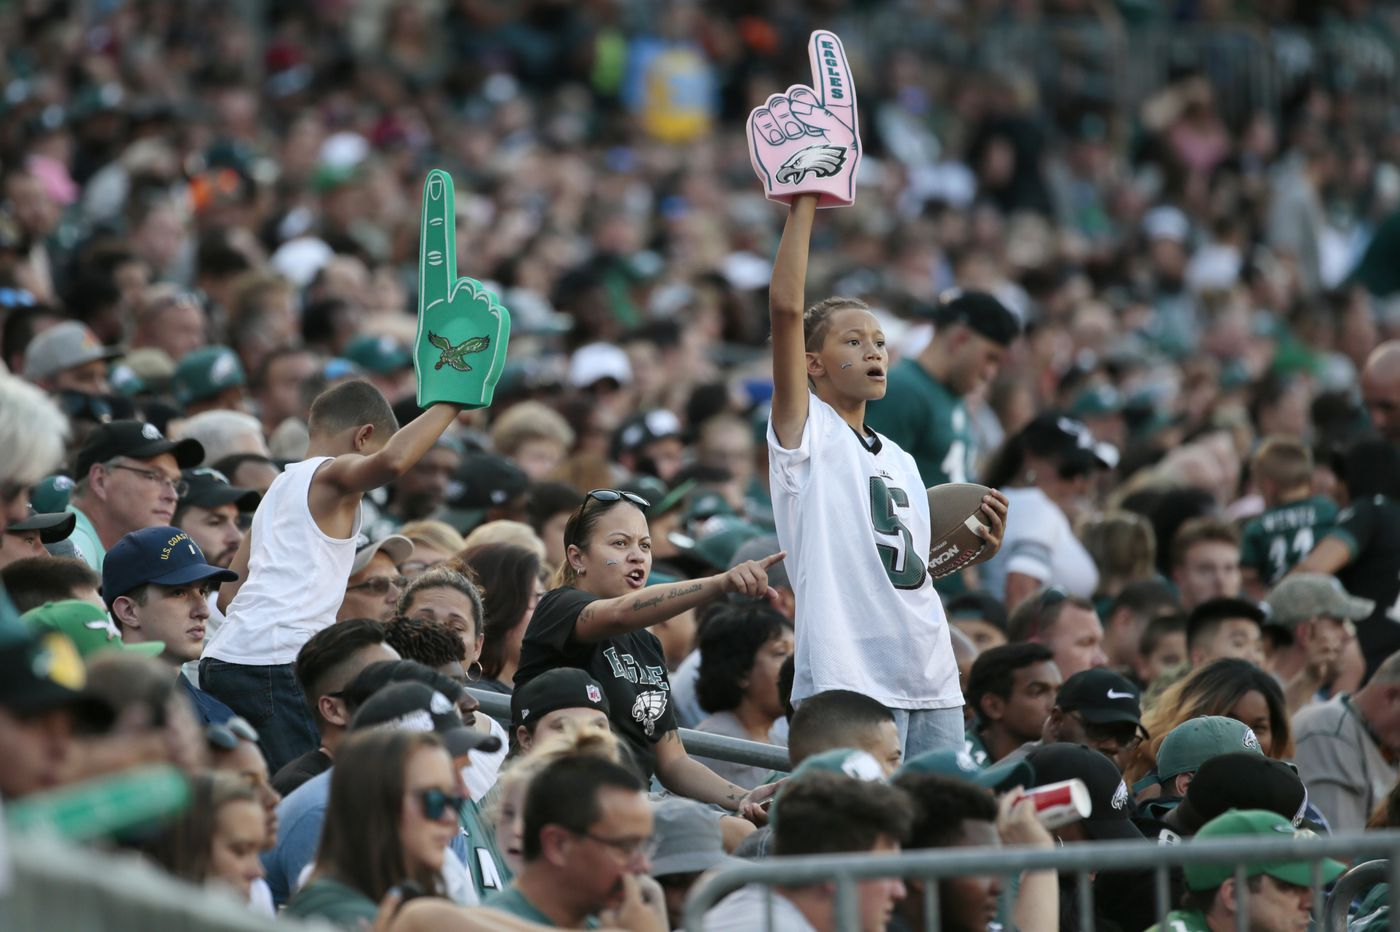 Eagles' Zach Ertz says military appreciation night 'puts everything into perspective'